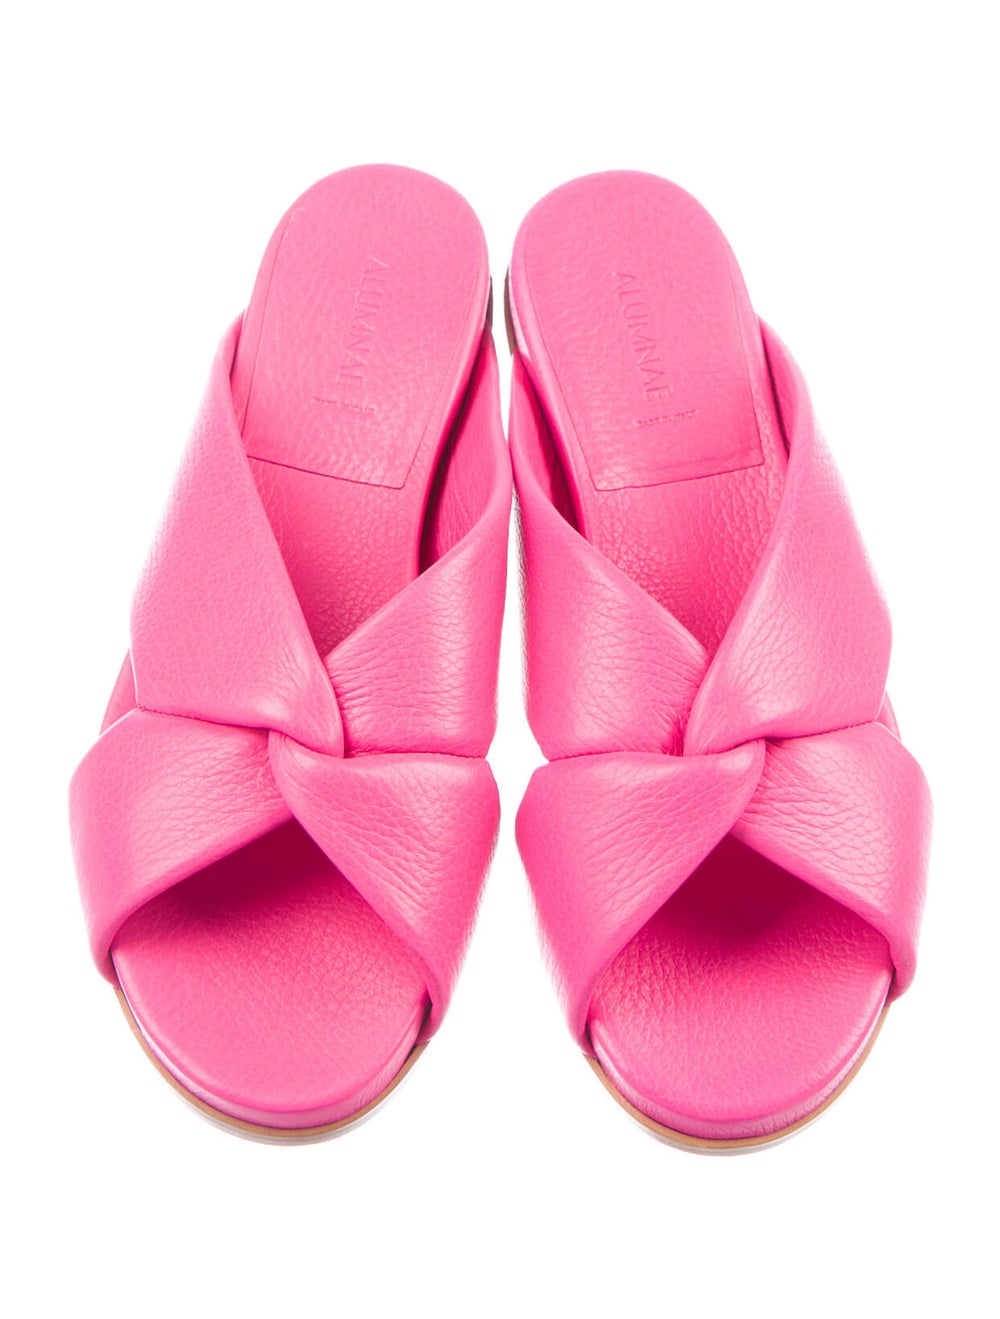 Alumnae Leather Slides Pink - image 3